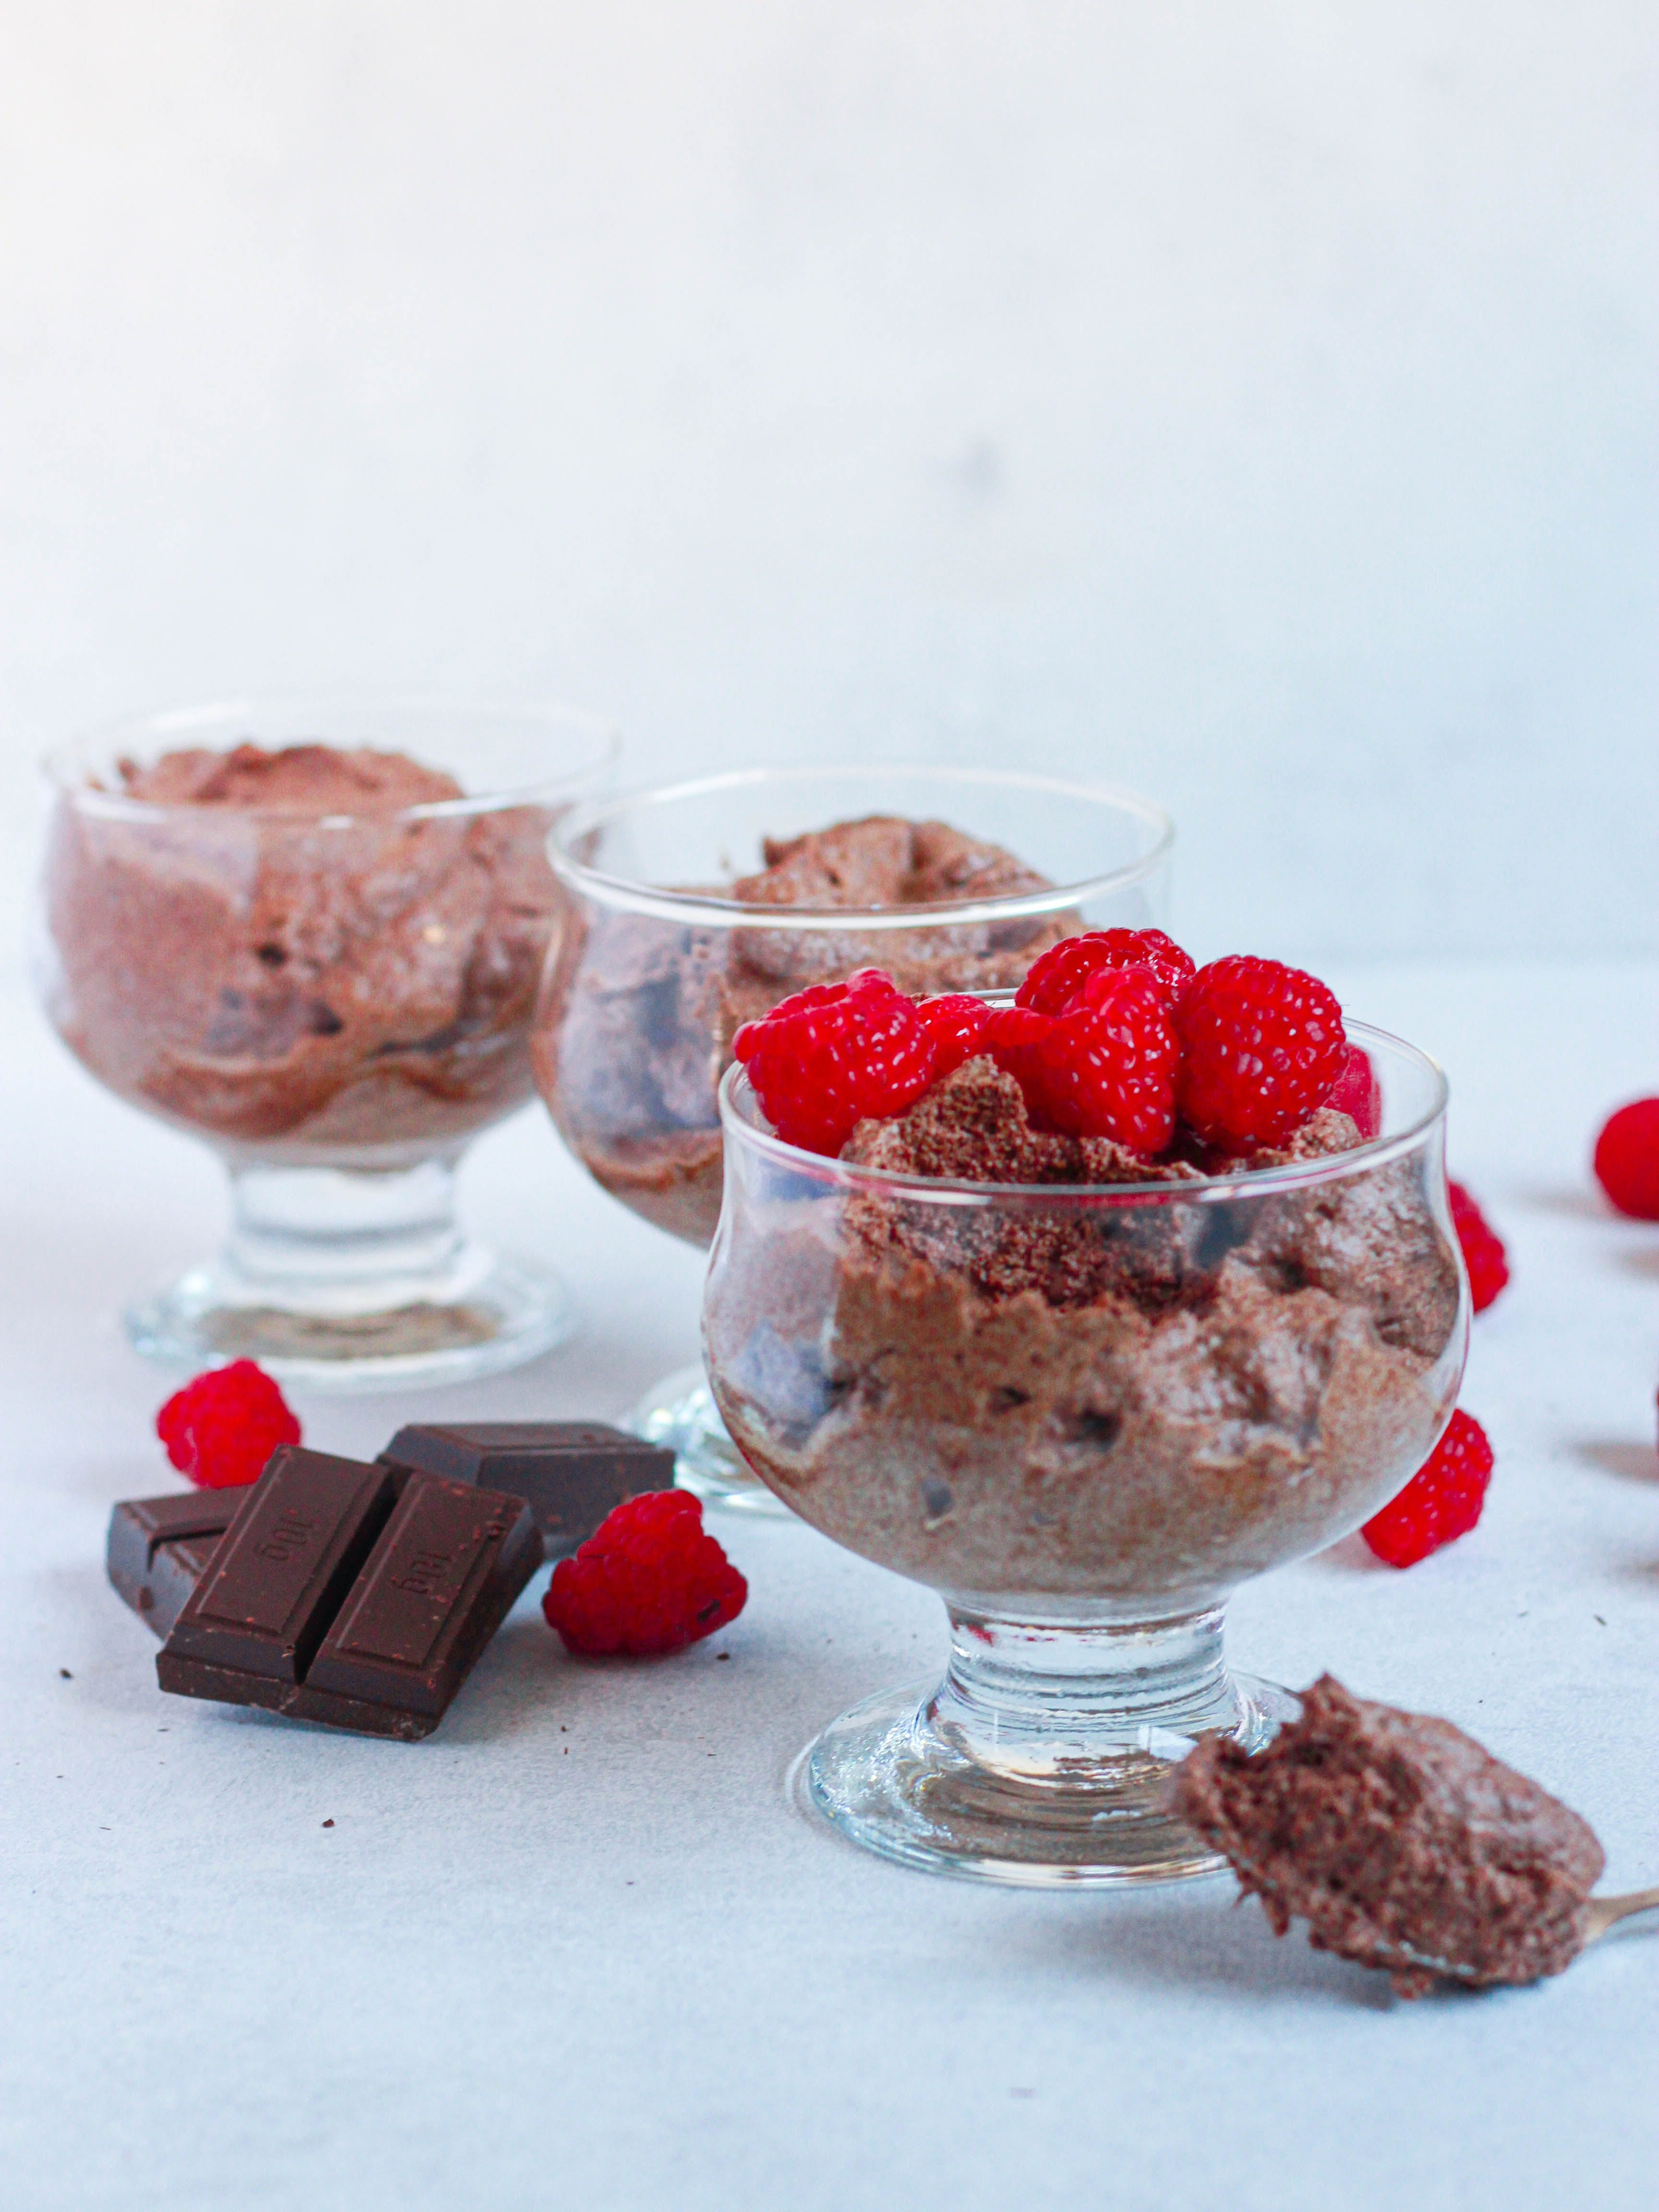 3 bowls of chocolate mousse, topped with raspberries and chocolate chunks